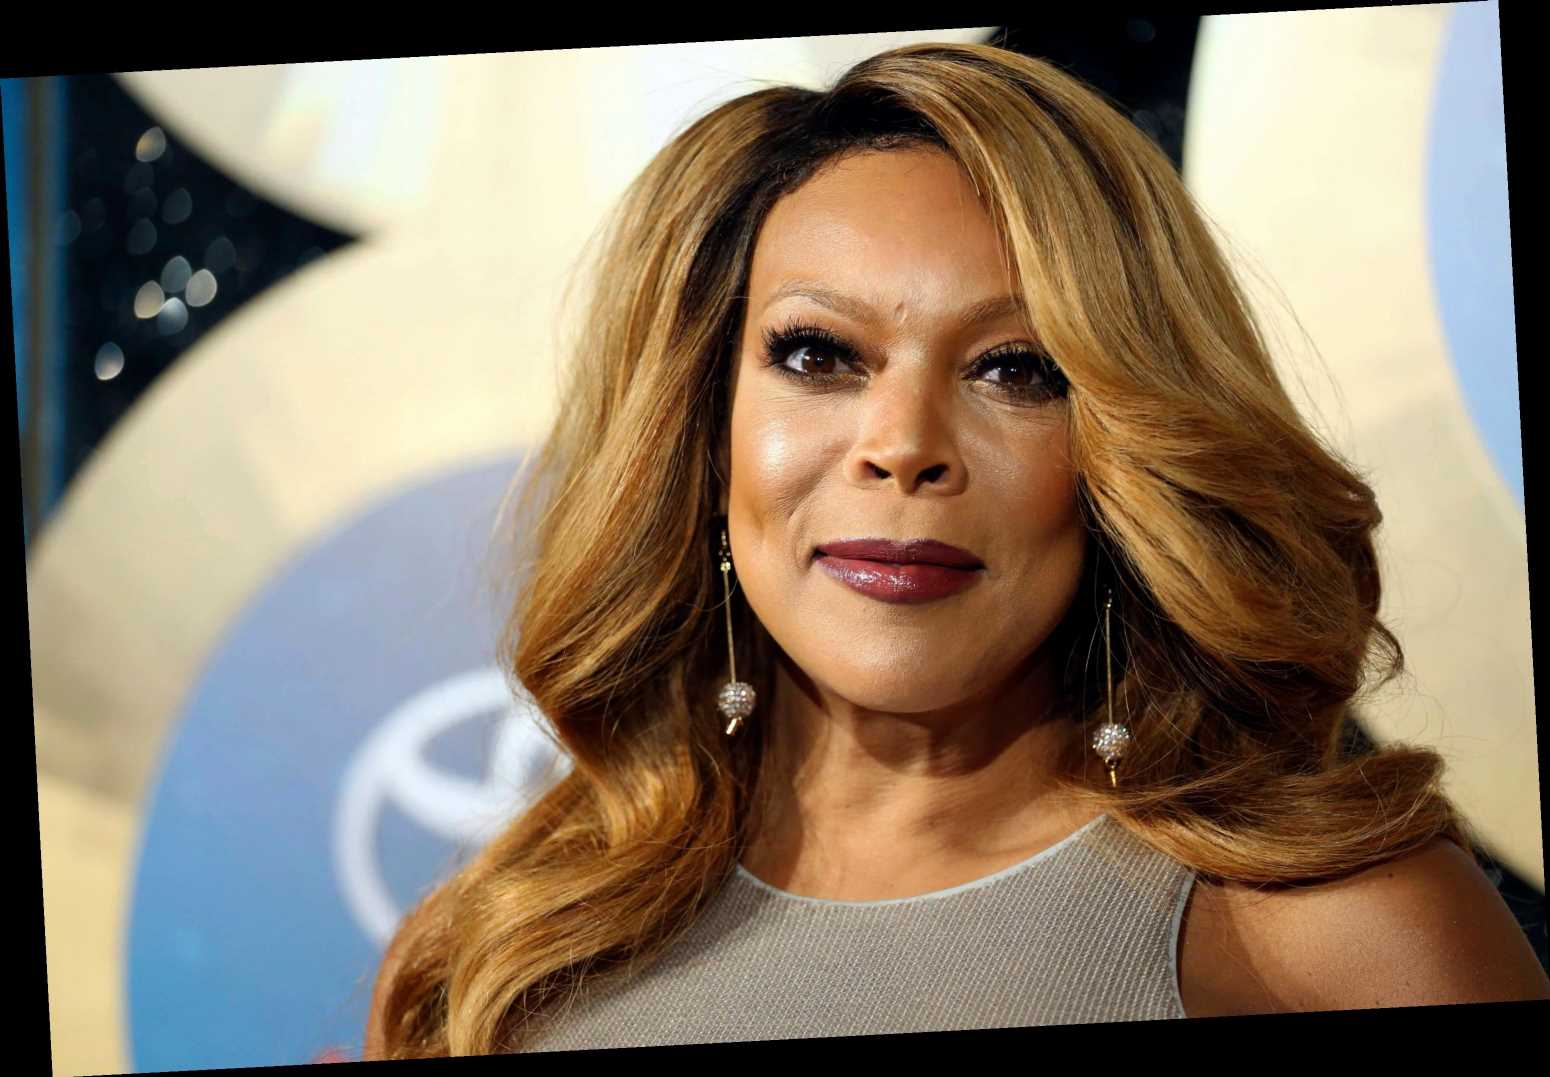 Who has Wendy Williams accused of rape?